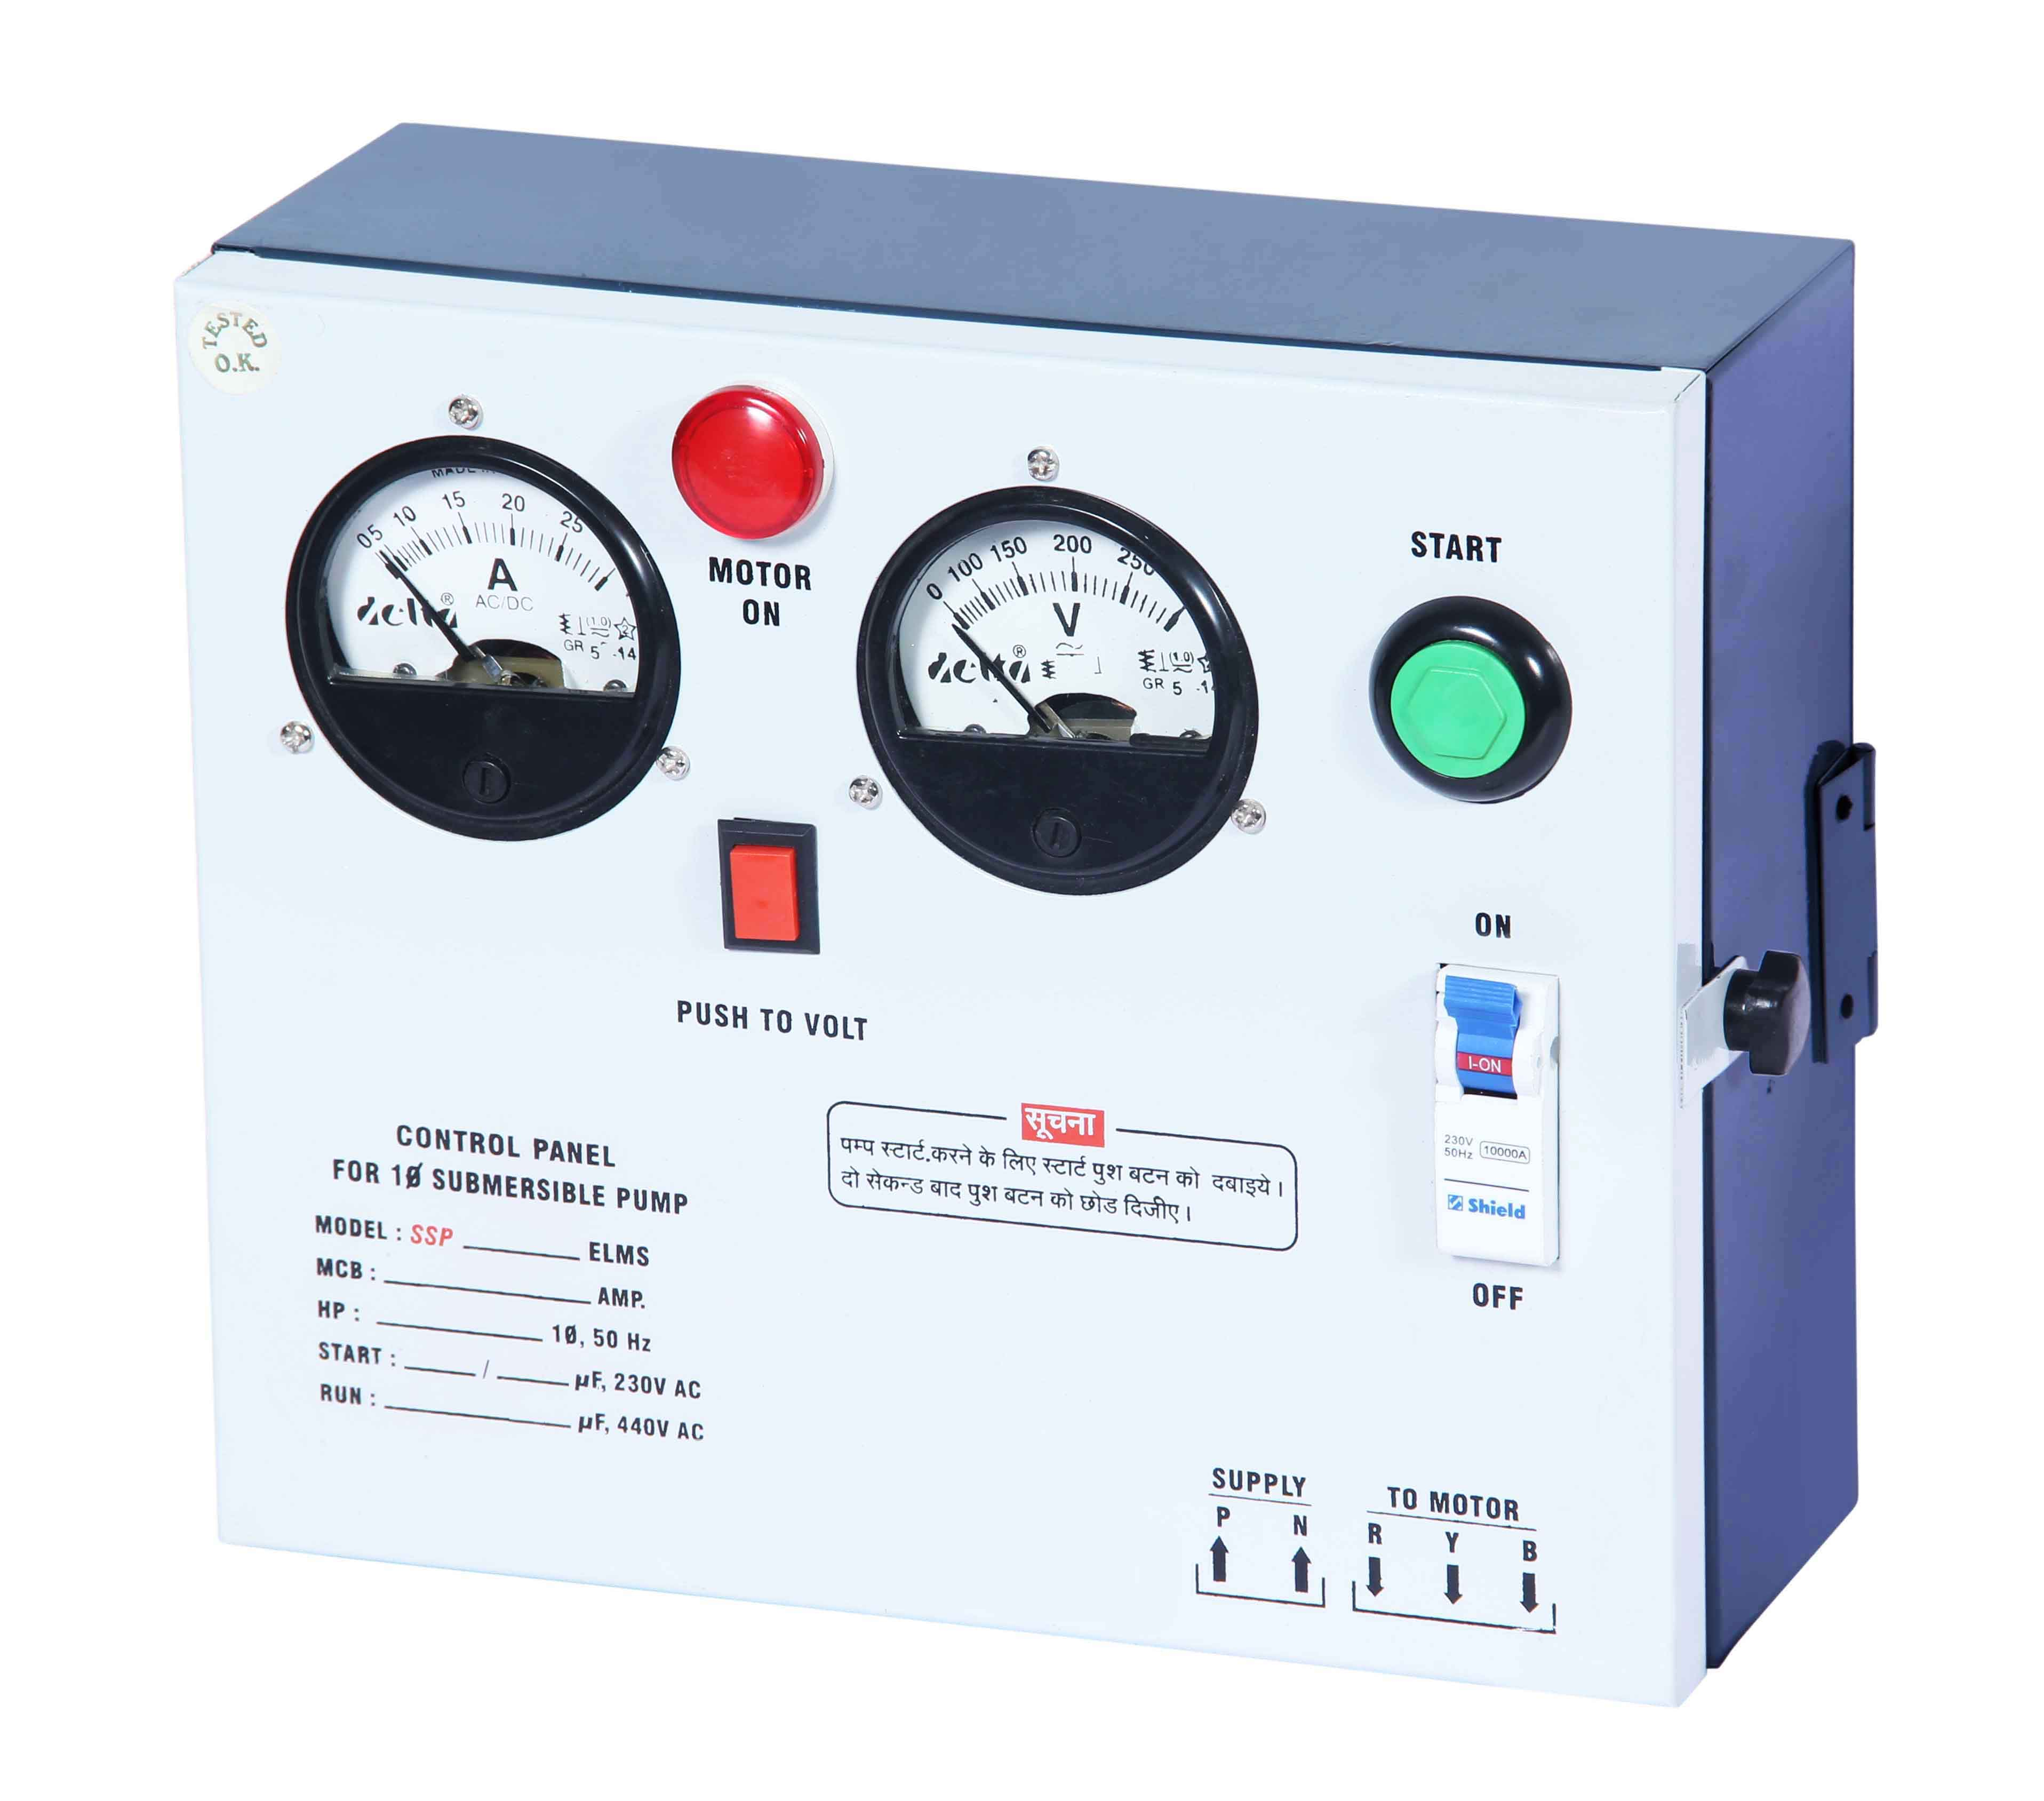 ELMS Single phase motor starter suitable up to 1.5 HP  submersible motor with overload protections by MCB